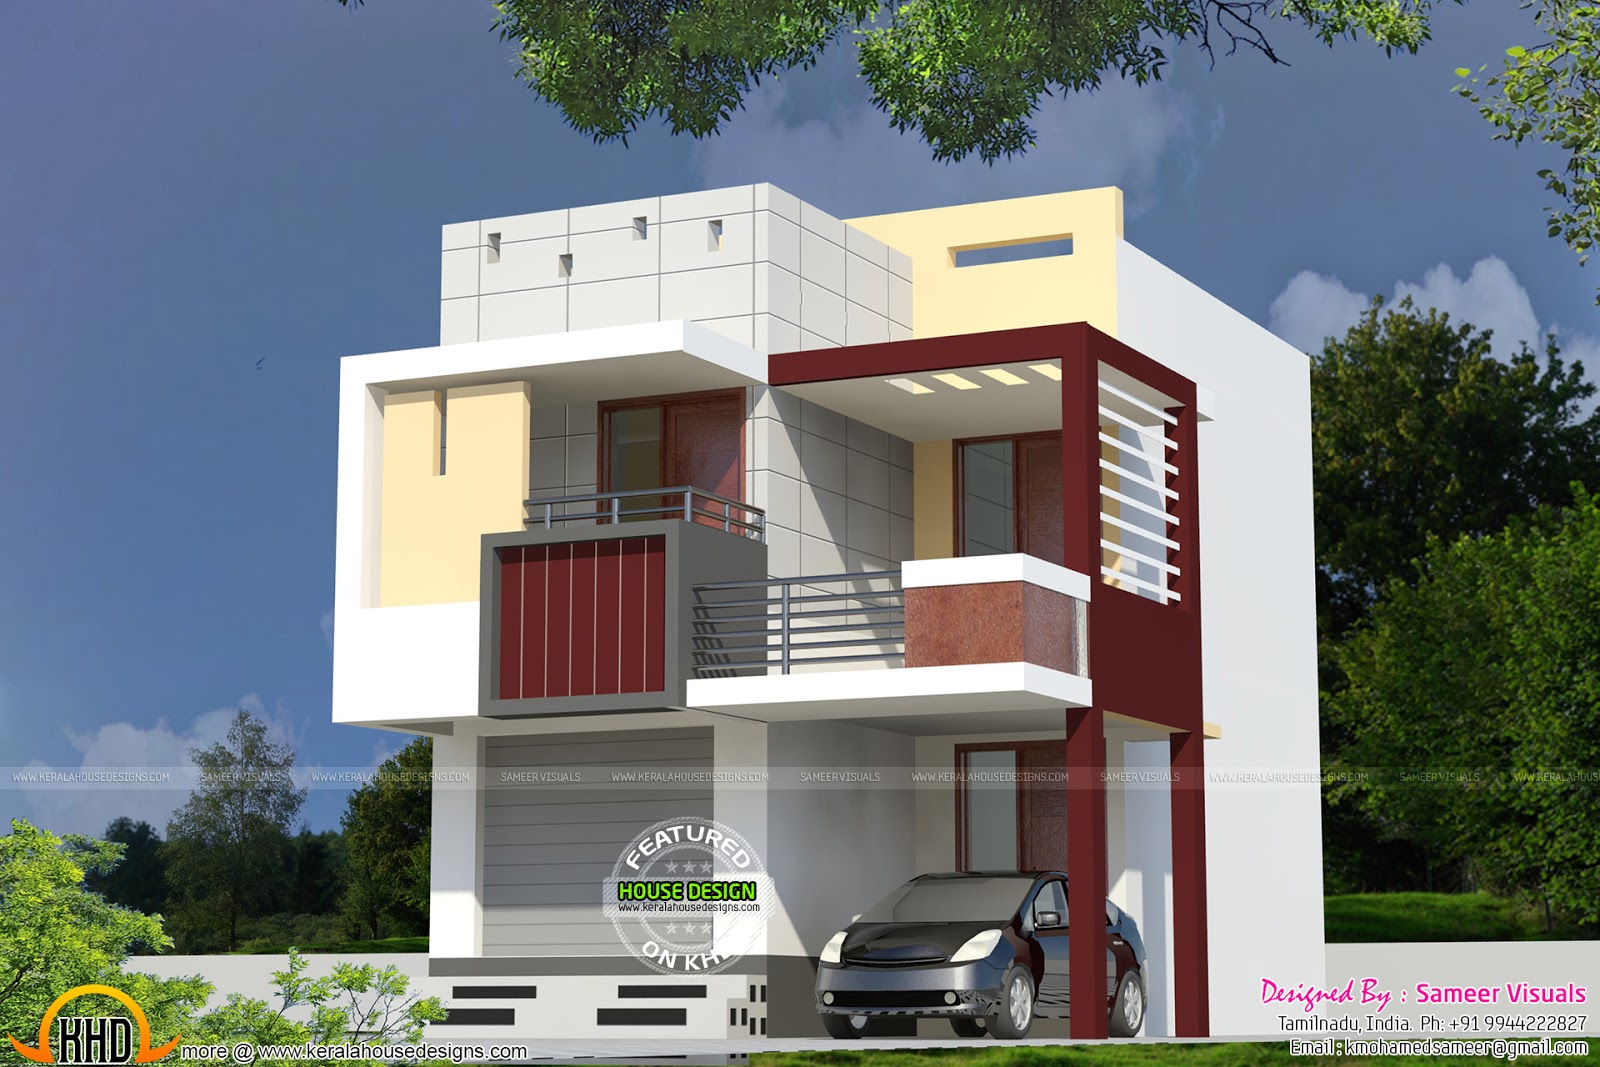 Small houses house elevation and 3d rendering on pinterest for Small indian house images